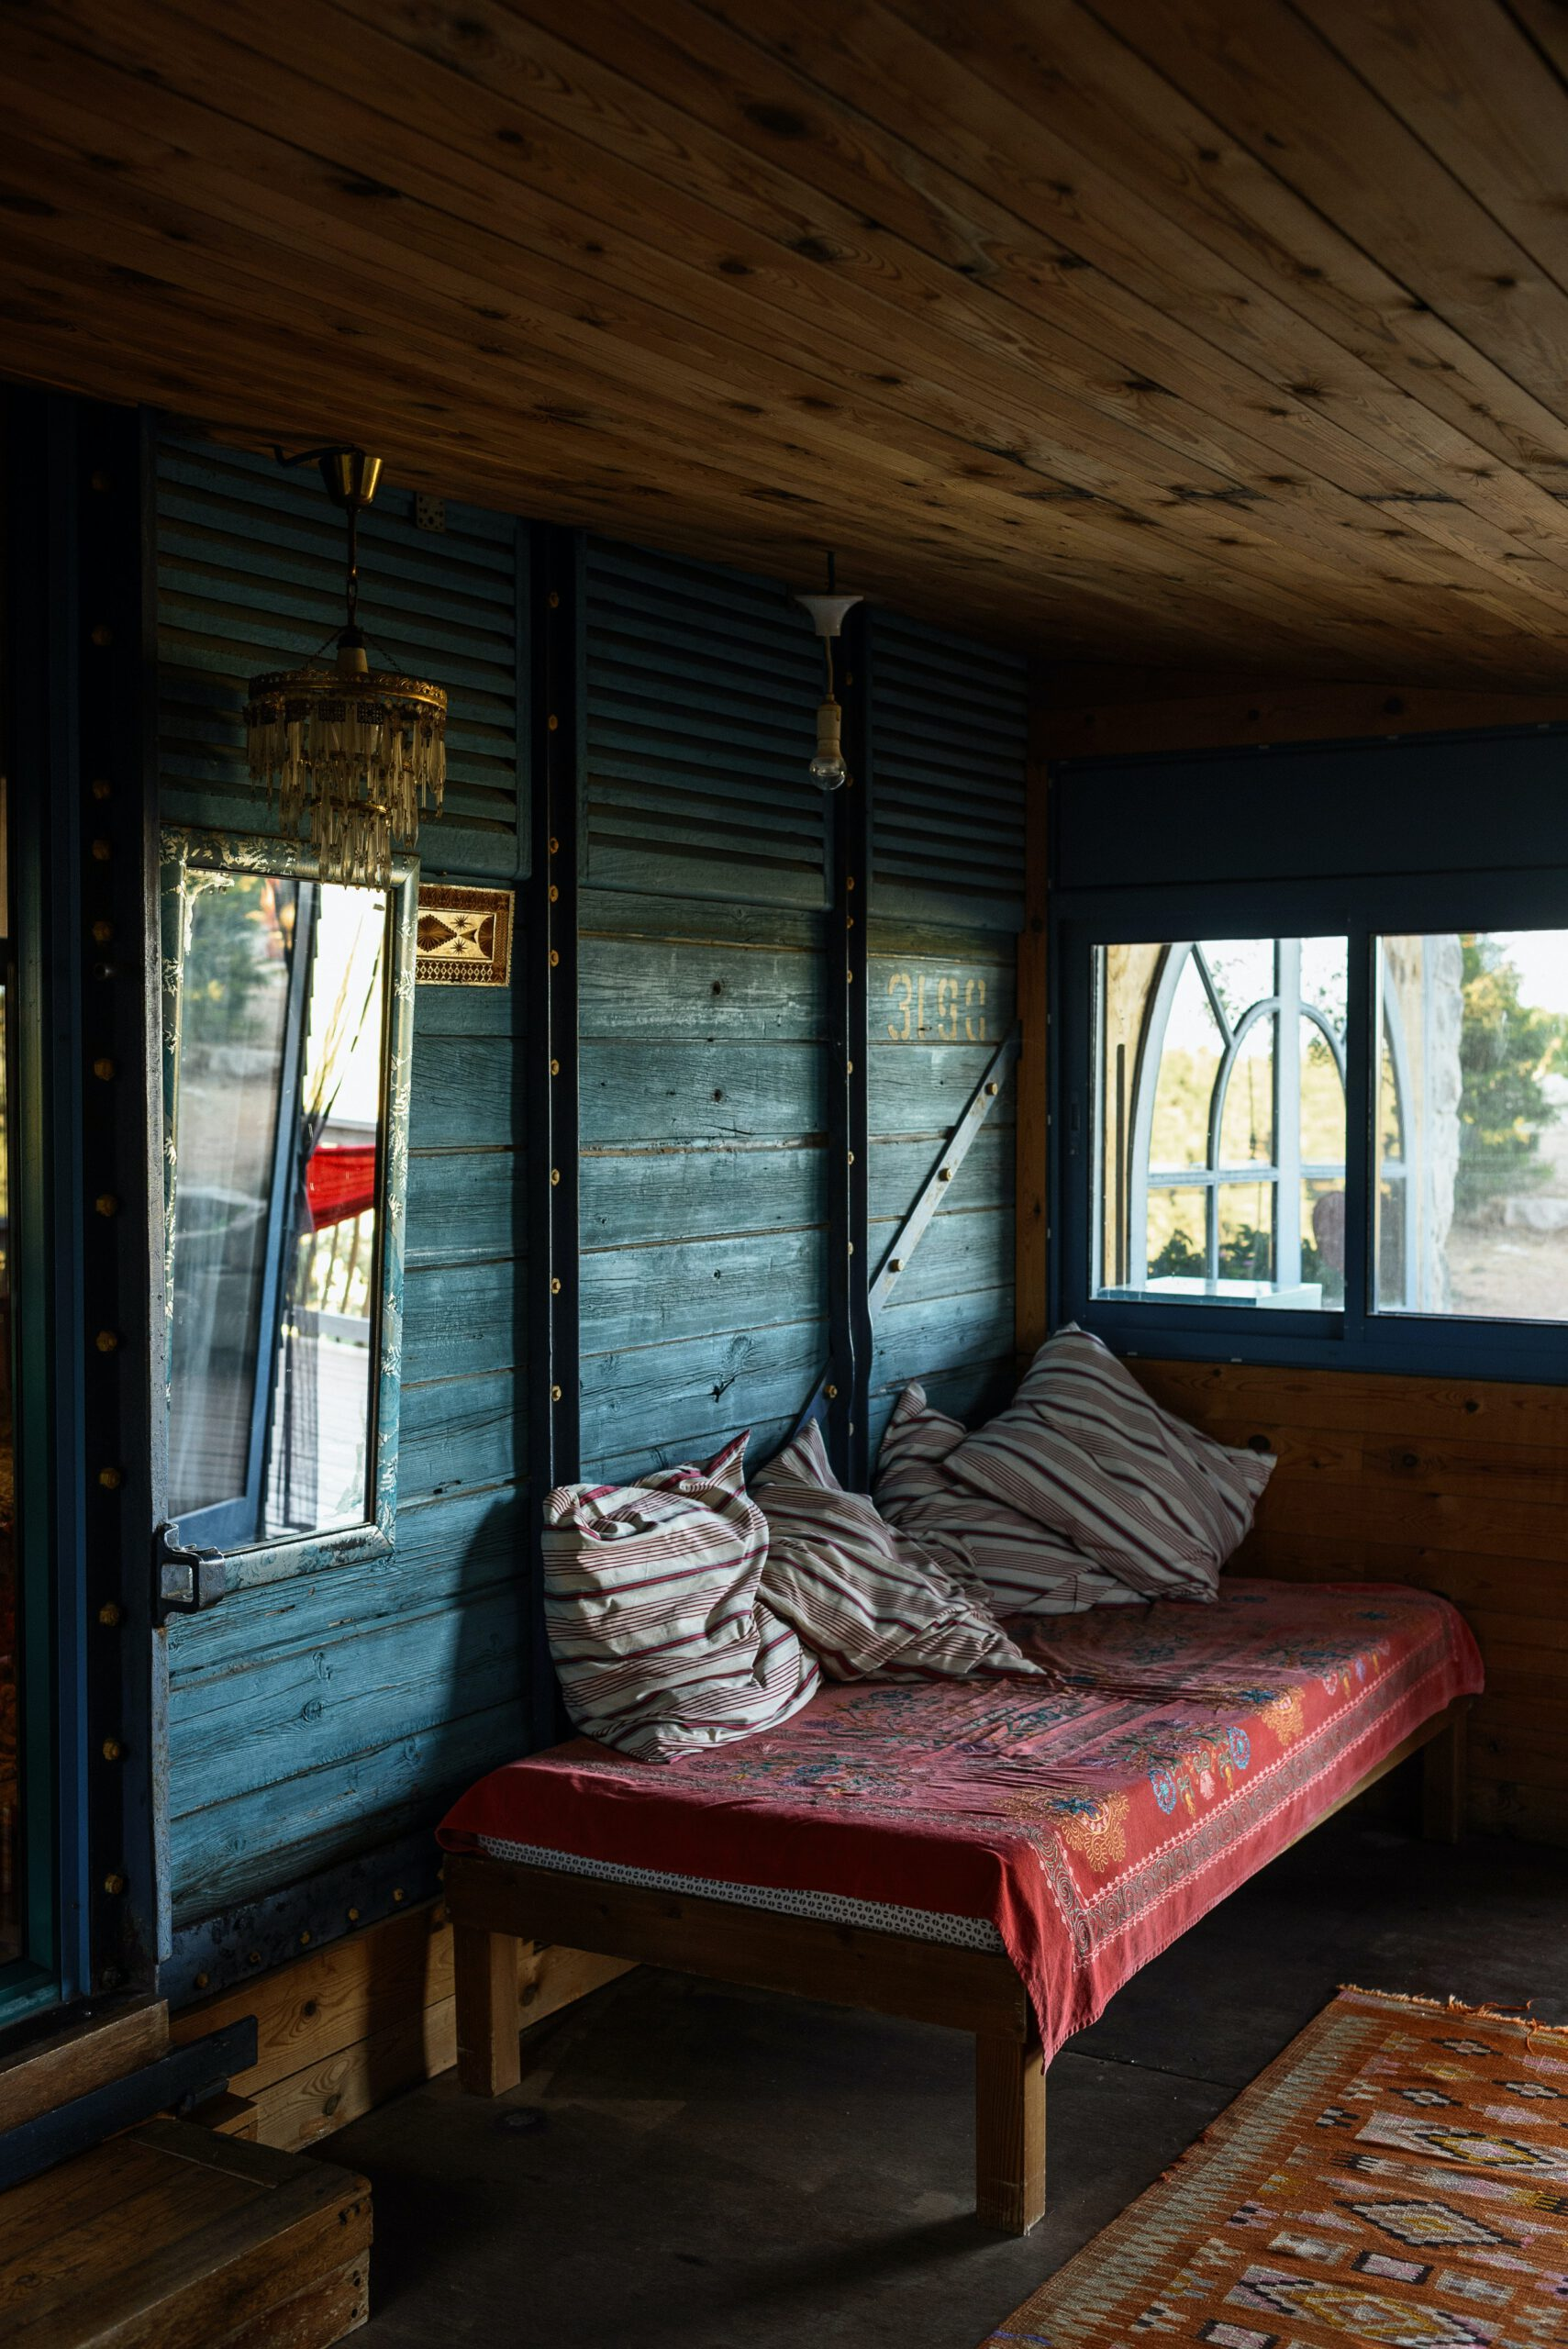 daybed-on-terrace-of-old-shabby-house-3951743